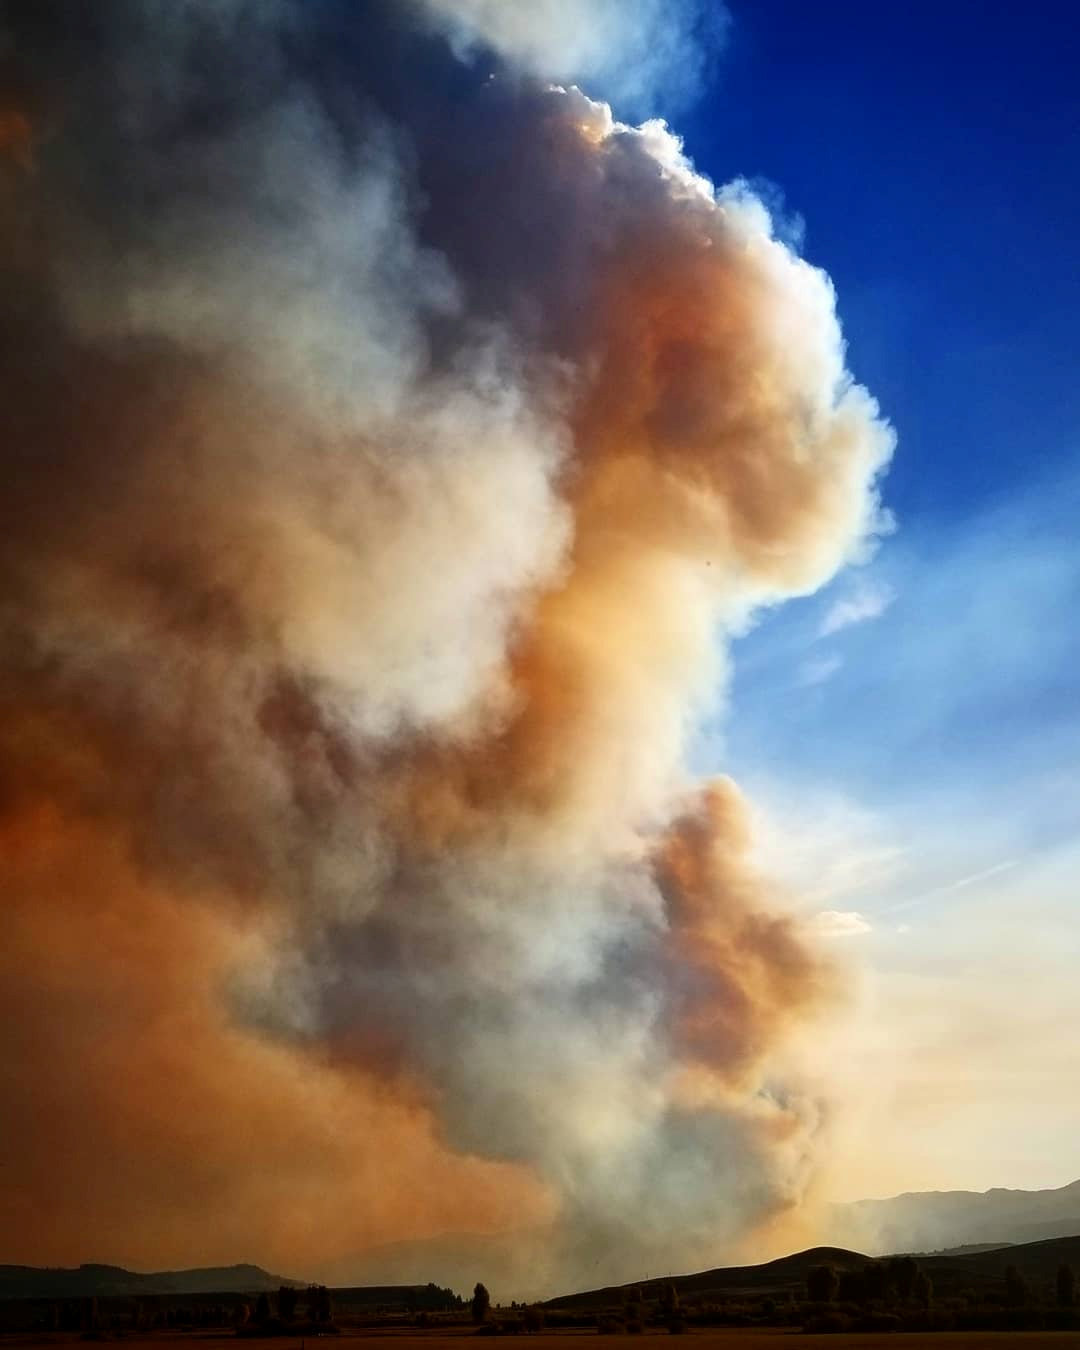 Smoke rises from a wildfire as seen from Bondurant, Wyoming, United States in this September 22, 2018 photo by Jared Kail. Jared Kail/Social Media/via REUTERS